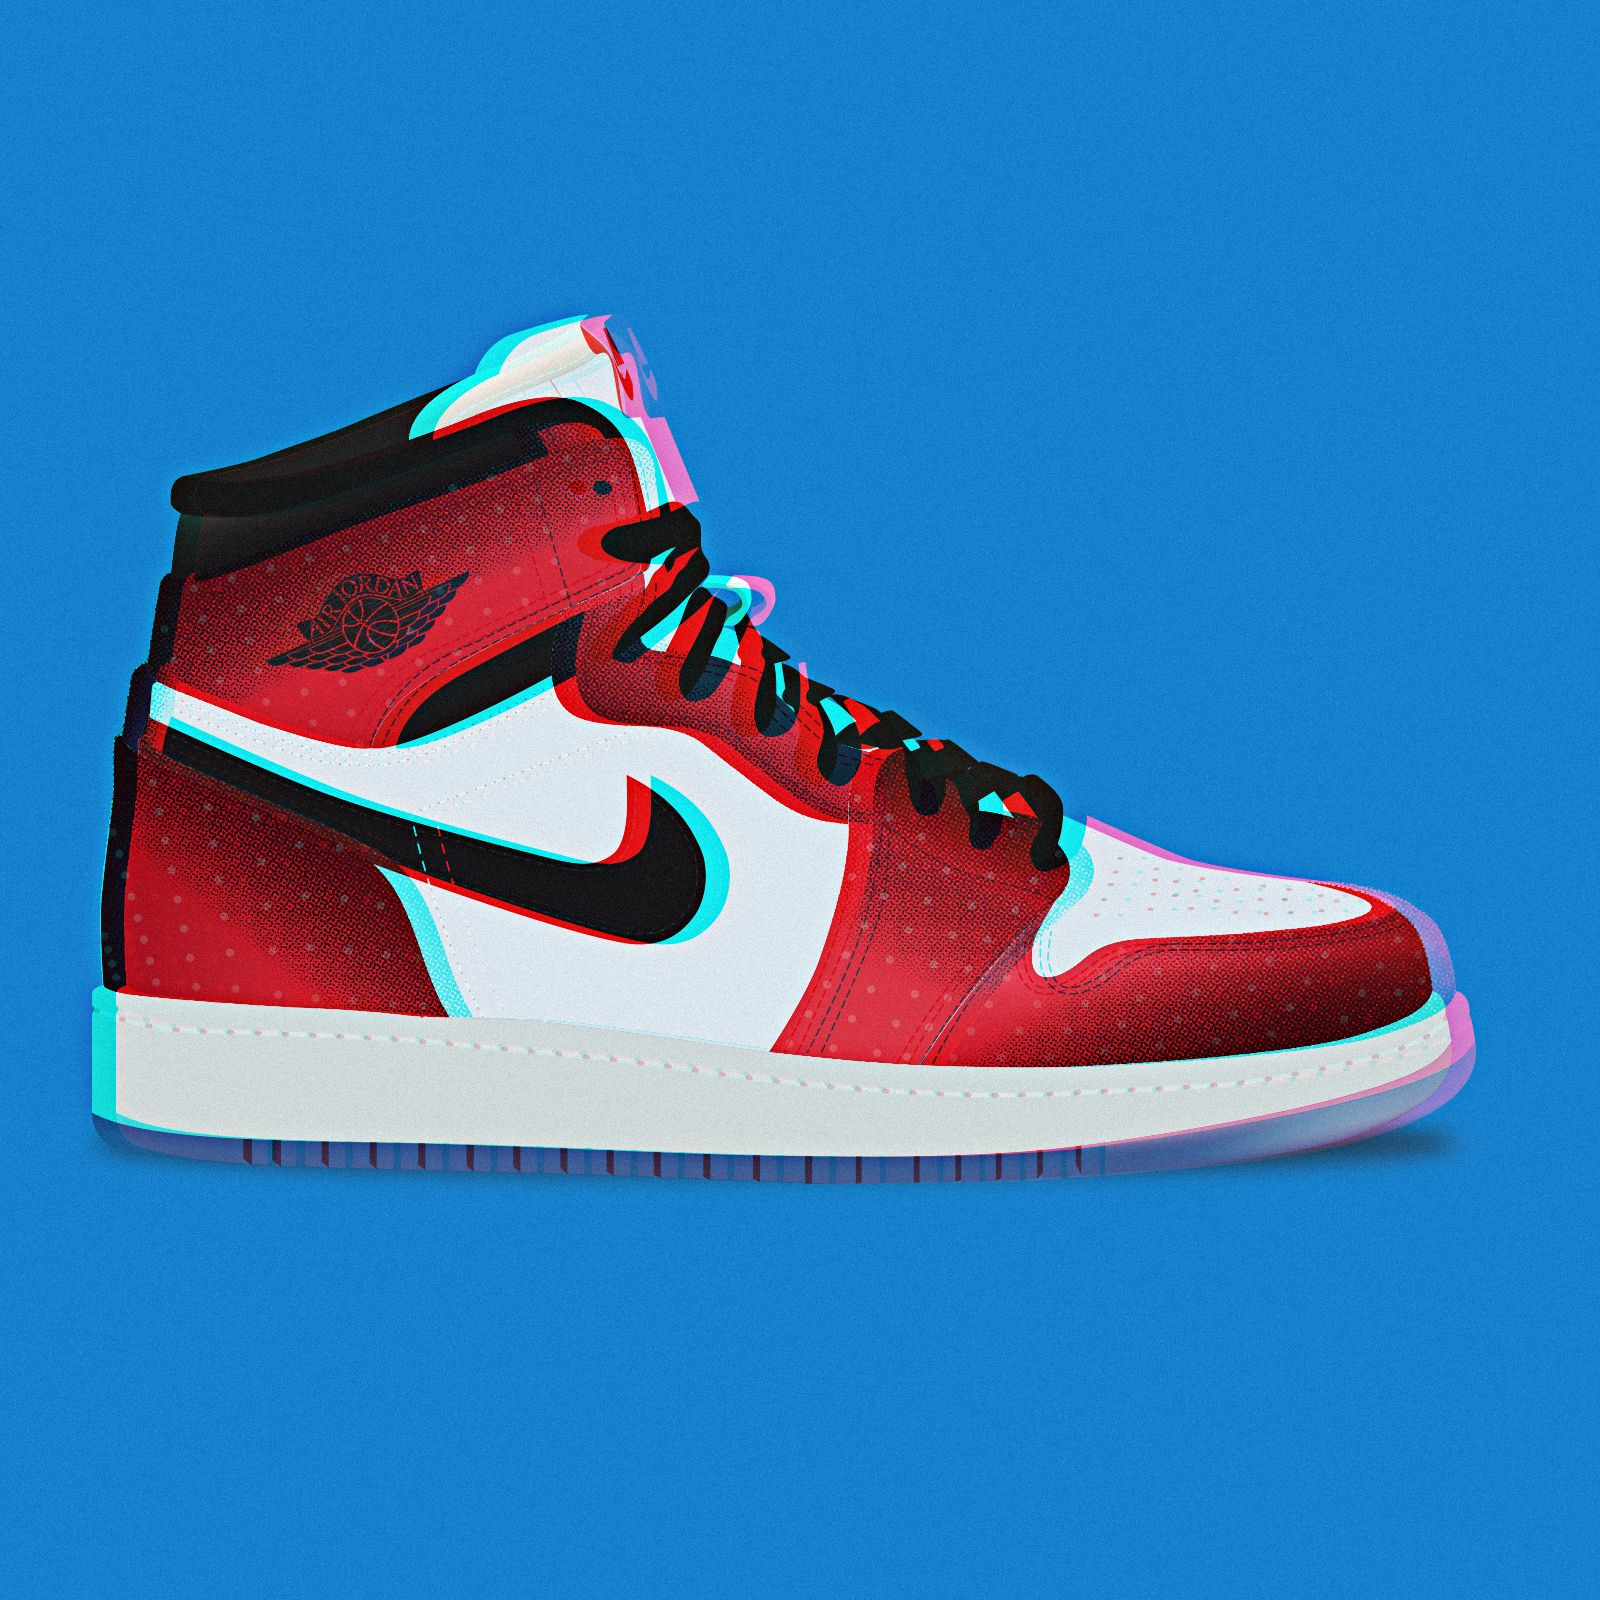 b6c8afde5e55 Jordan Brand is celebrating the release of Spider-Man  Into the Spider-Verse